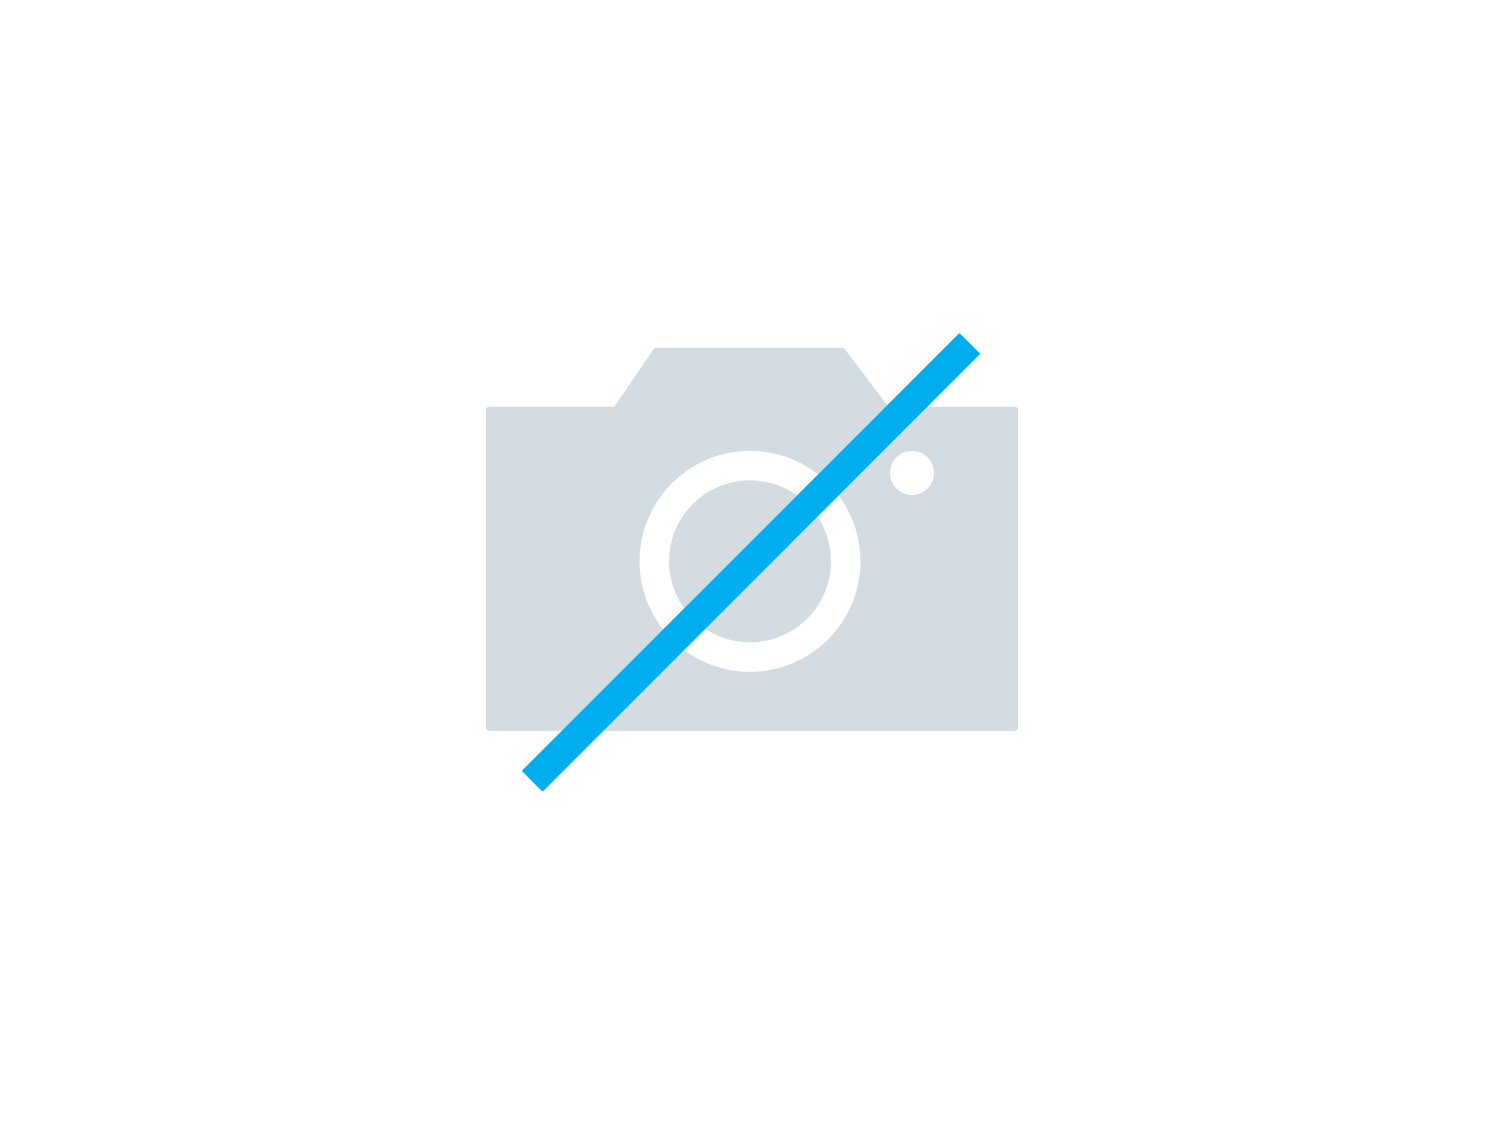 Relaxzetel Citizen lederlook zwart. In stock · Fauteuil relax Citizen  similicuir noir 541a80366c43